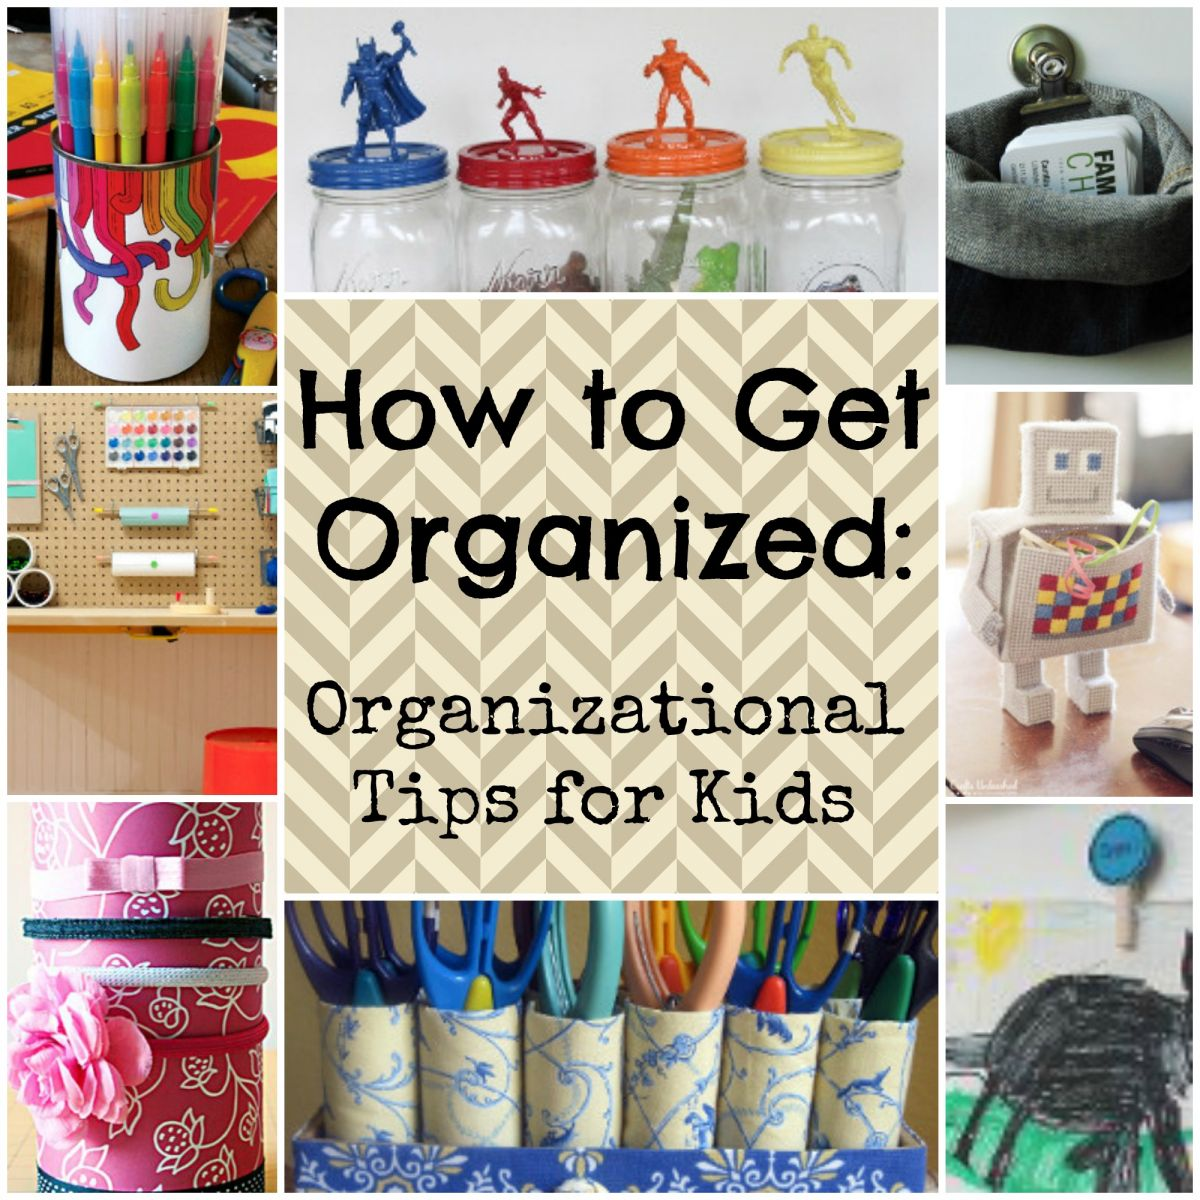 How to Get Organized: 19 Organizational Tips for Kids